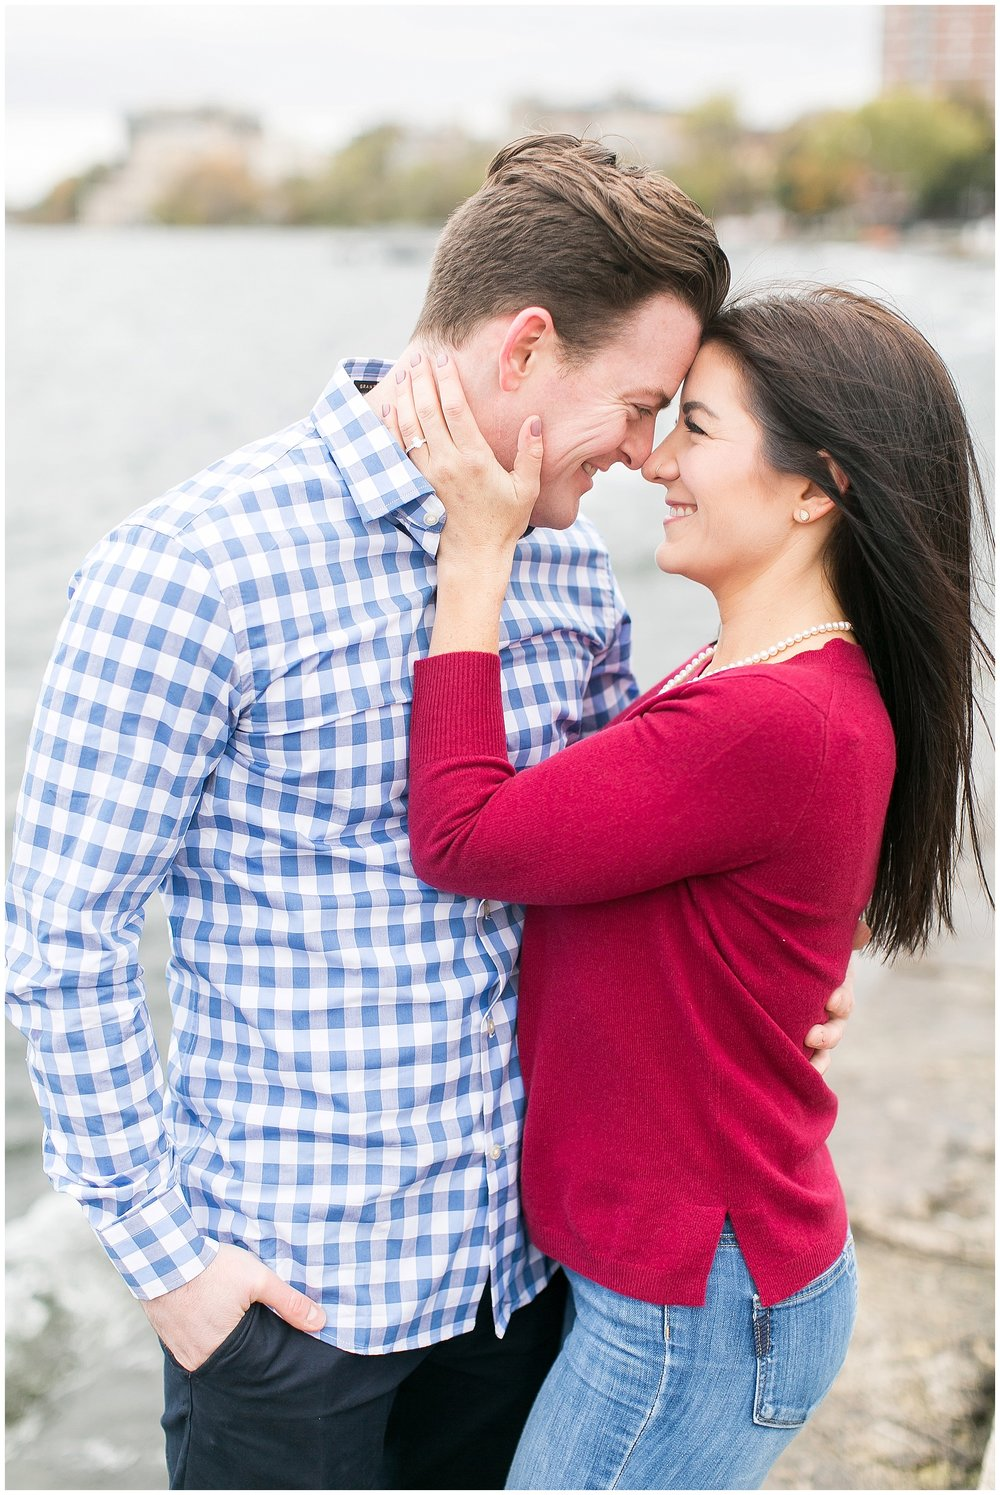 Autumn_engagement_session_memorial_union_Madison_wisconsin_0800.jpg